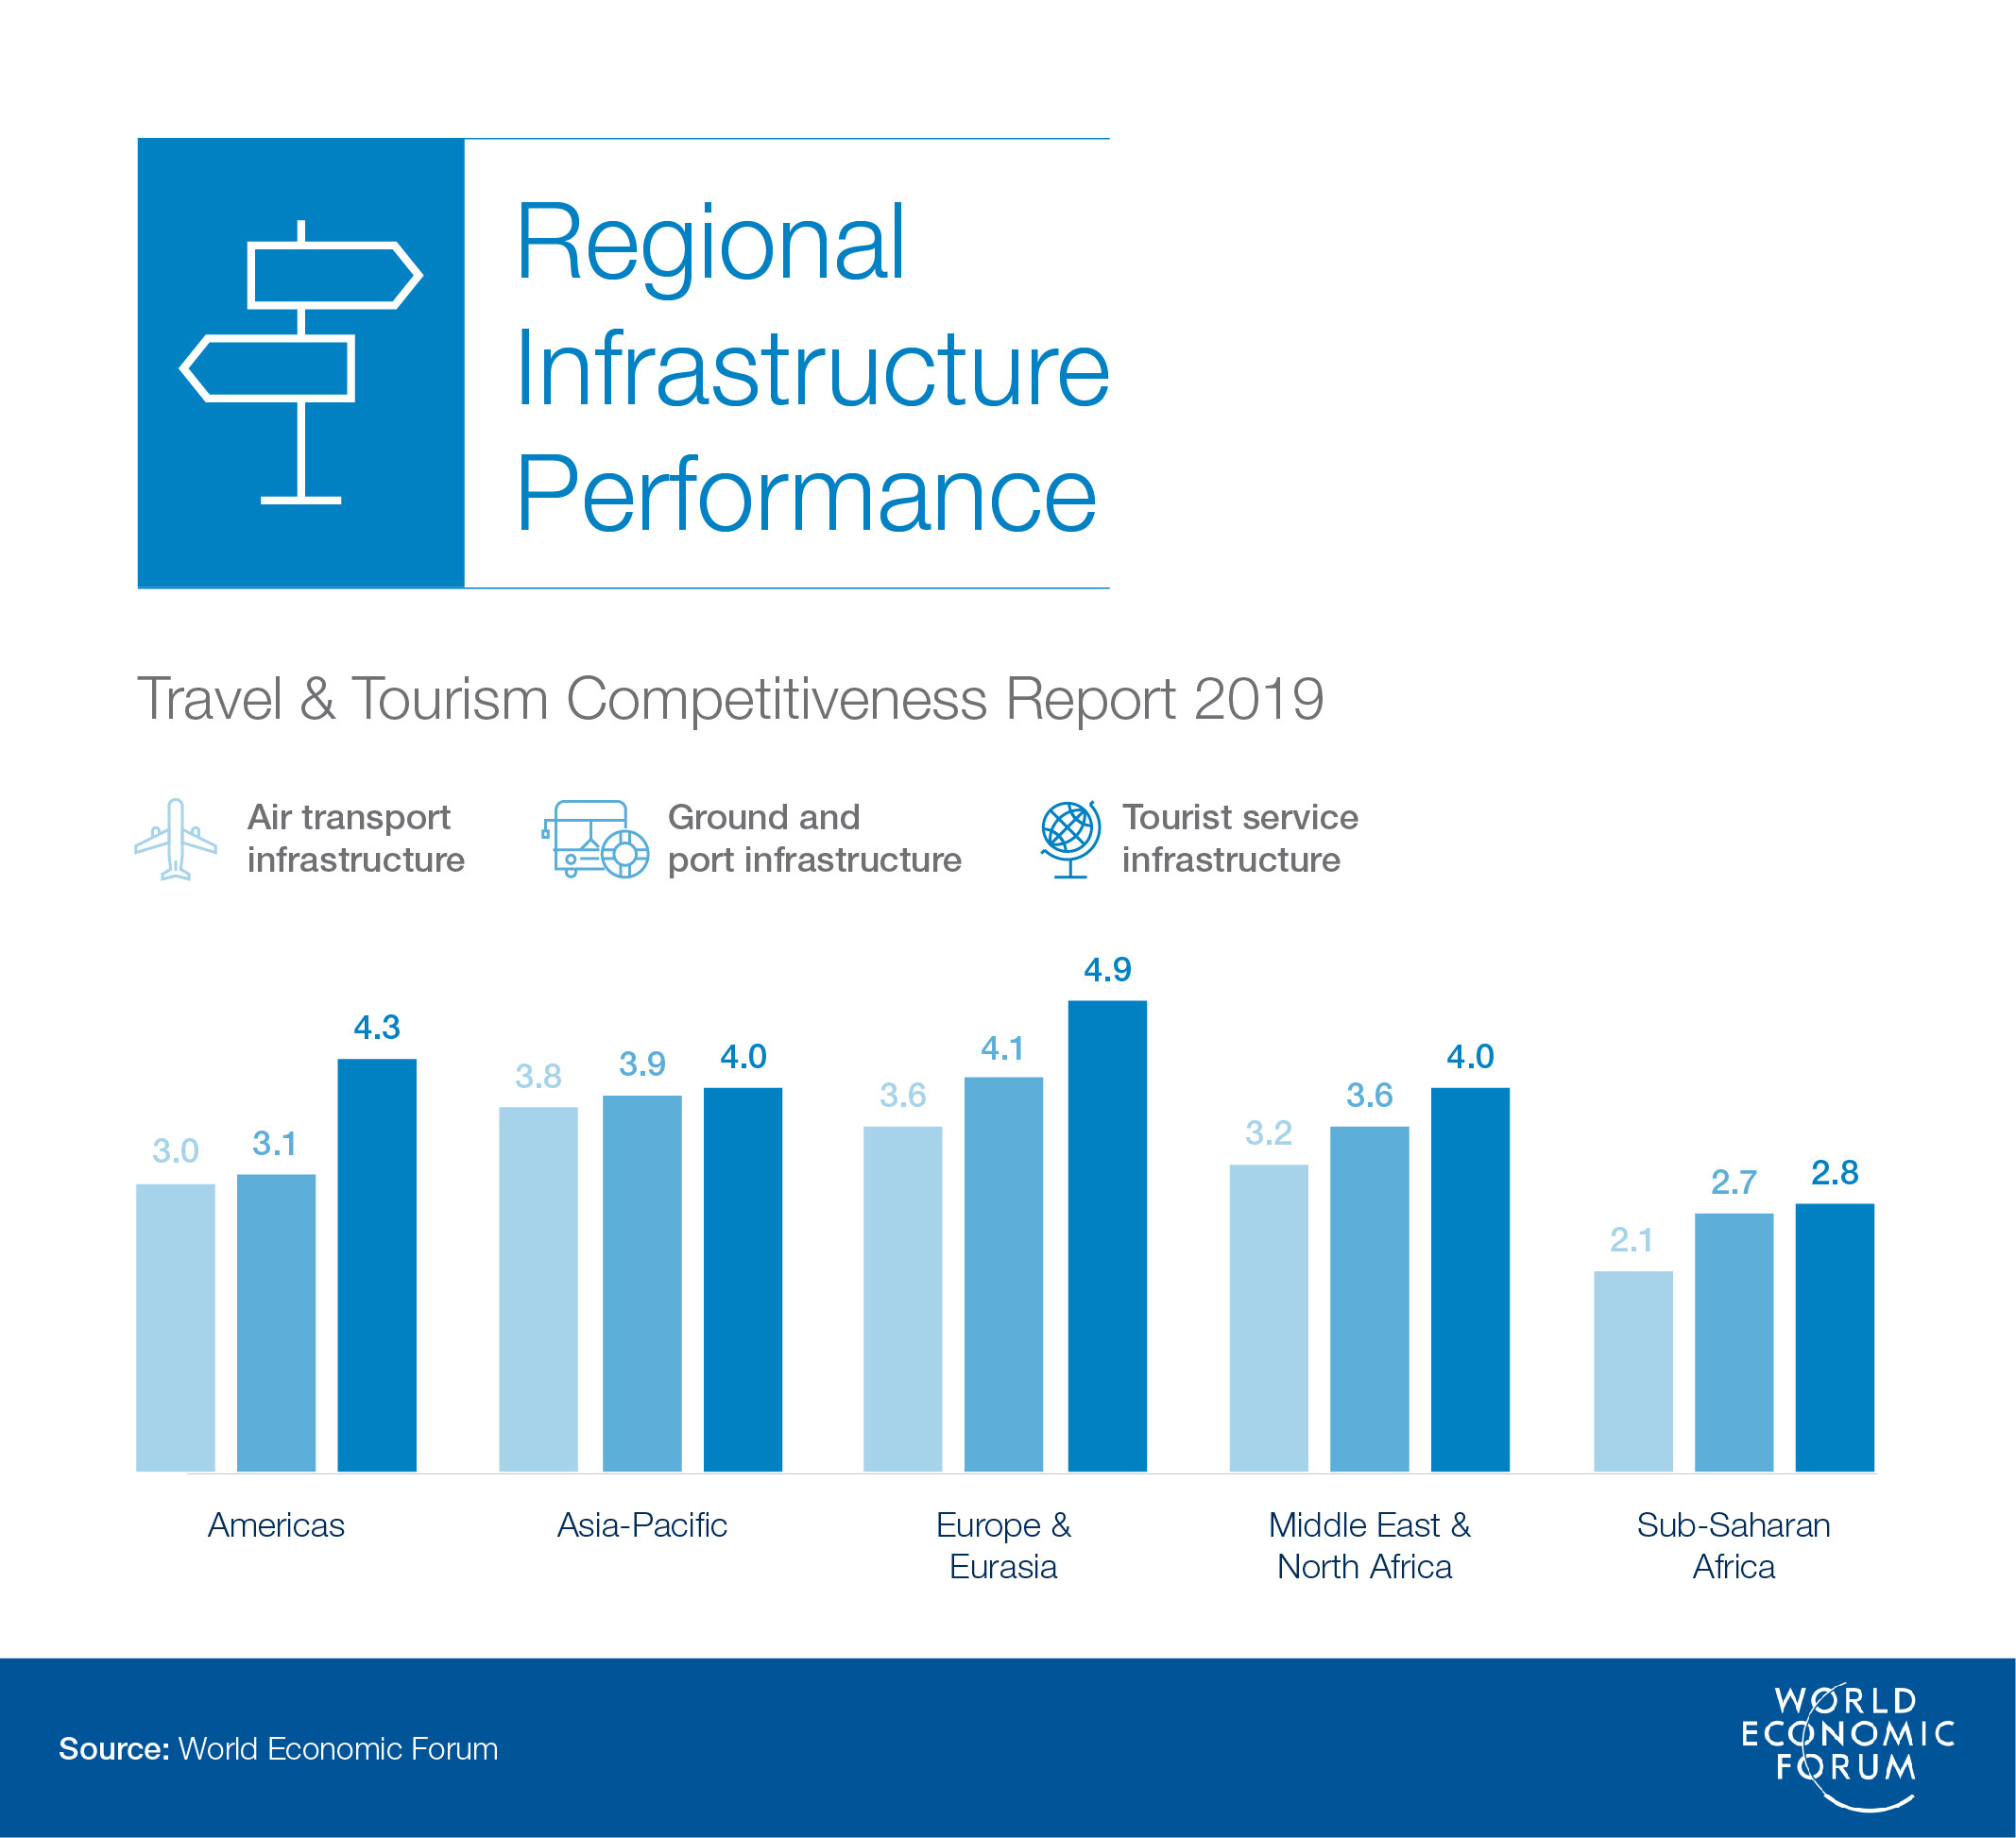 If you build it, they will come: Why infrastructure is